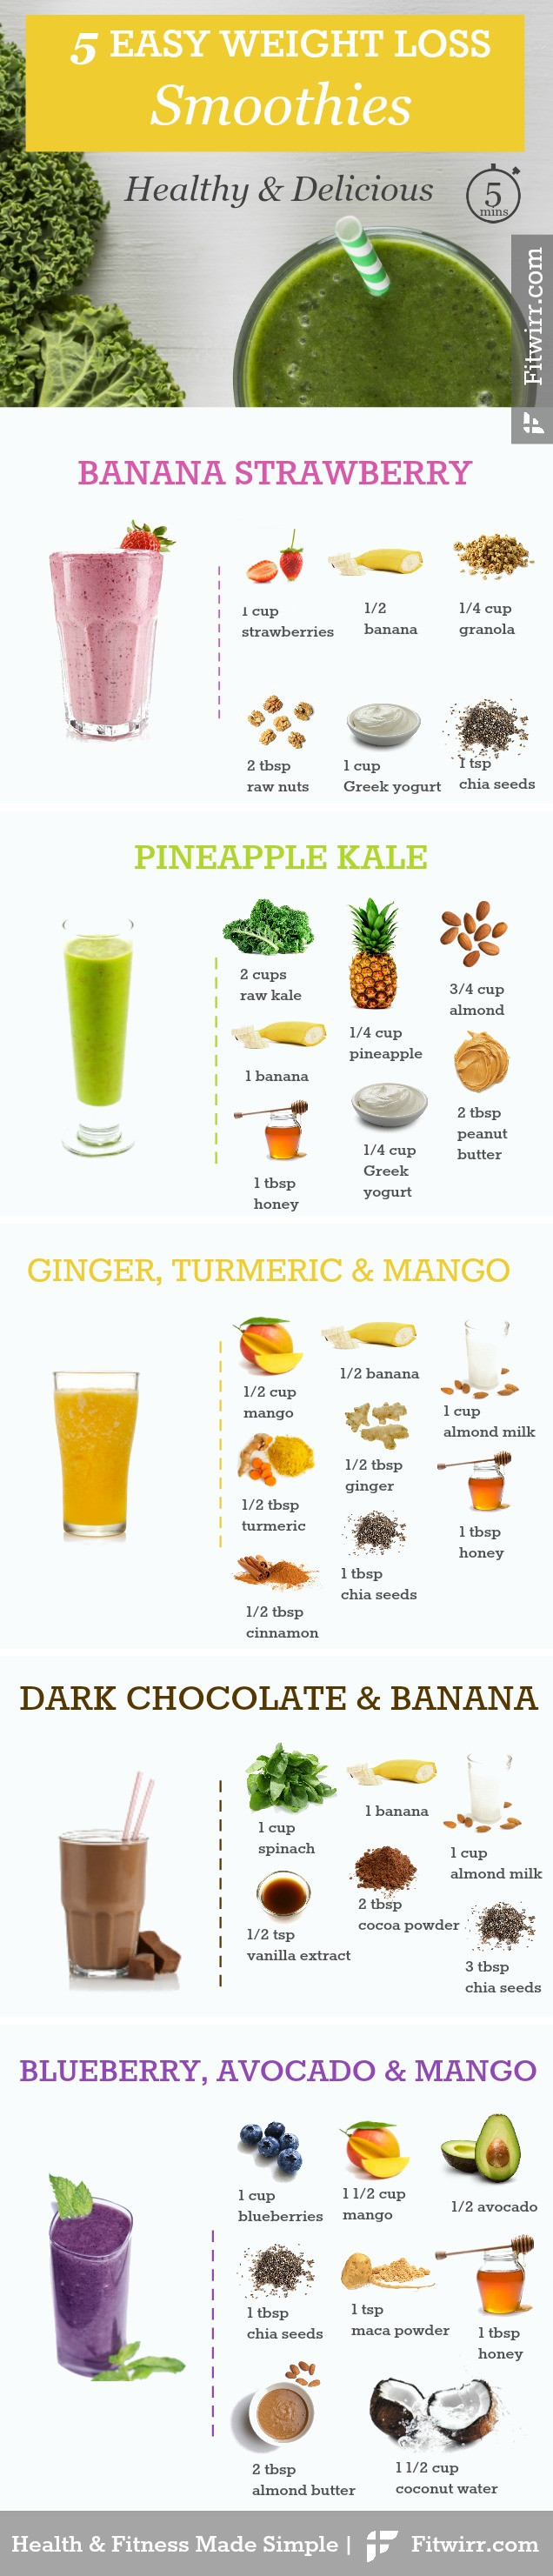 Healthy Smoothie Recipes For Weight Loss  5 Best Smoothie Recipes for Weight Loss